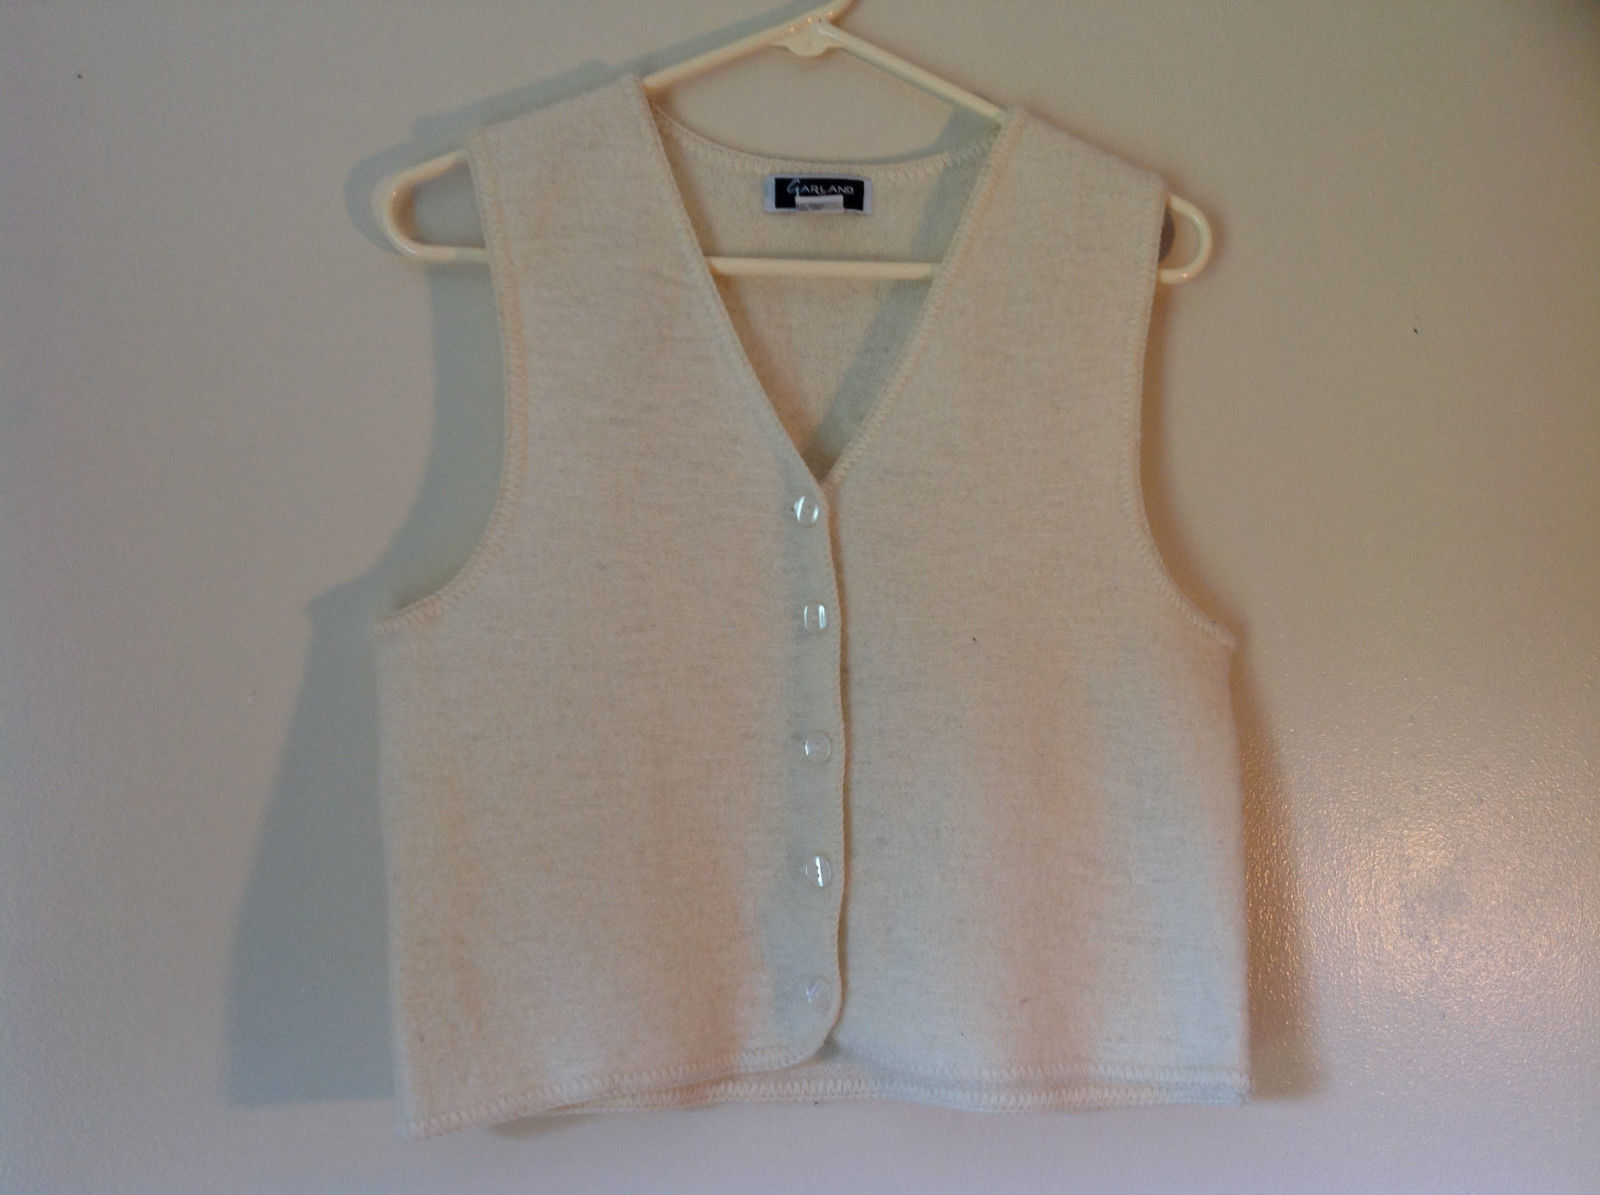 100 Percent Wool Off White Vest Size Medium by Garland 5 Button Closure V Neck